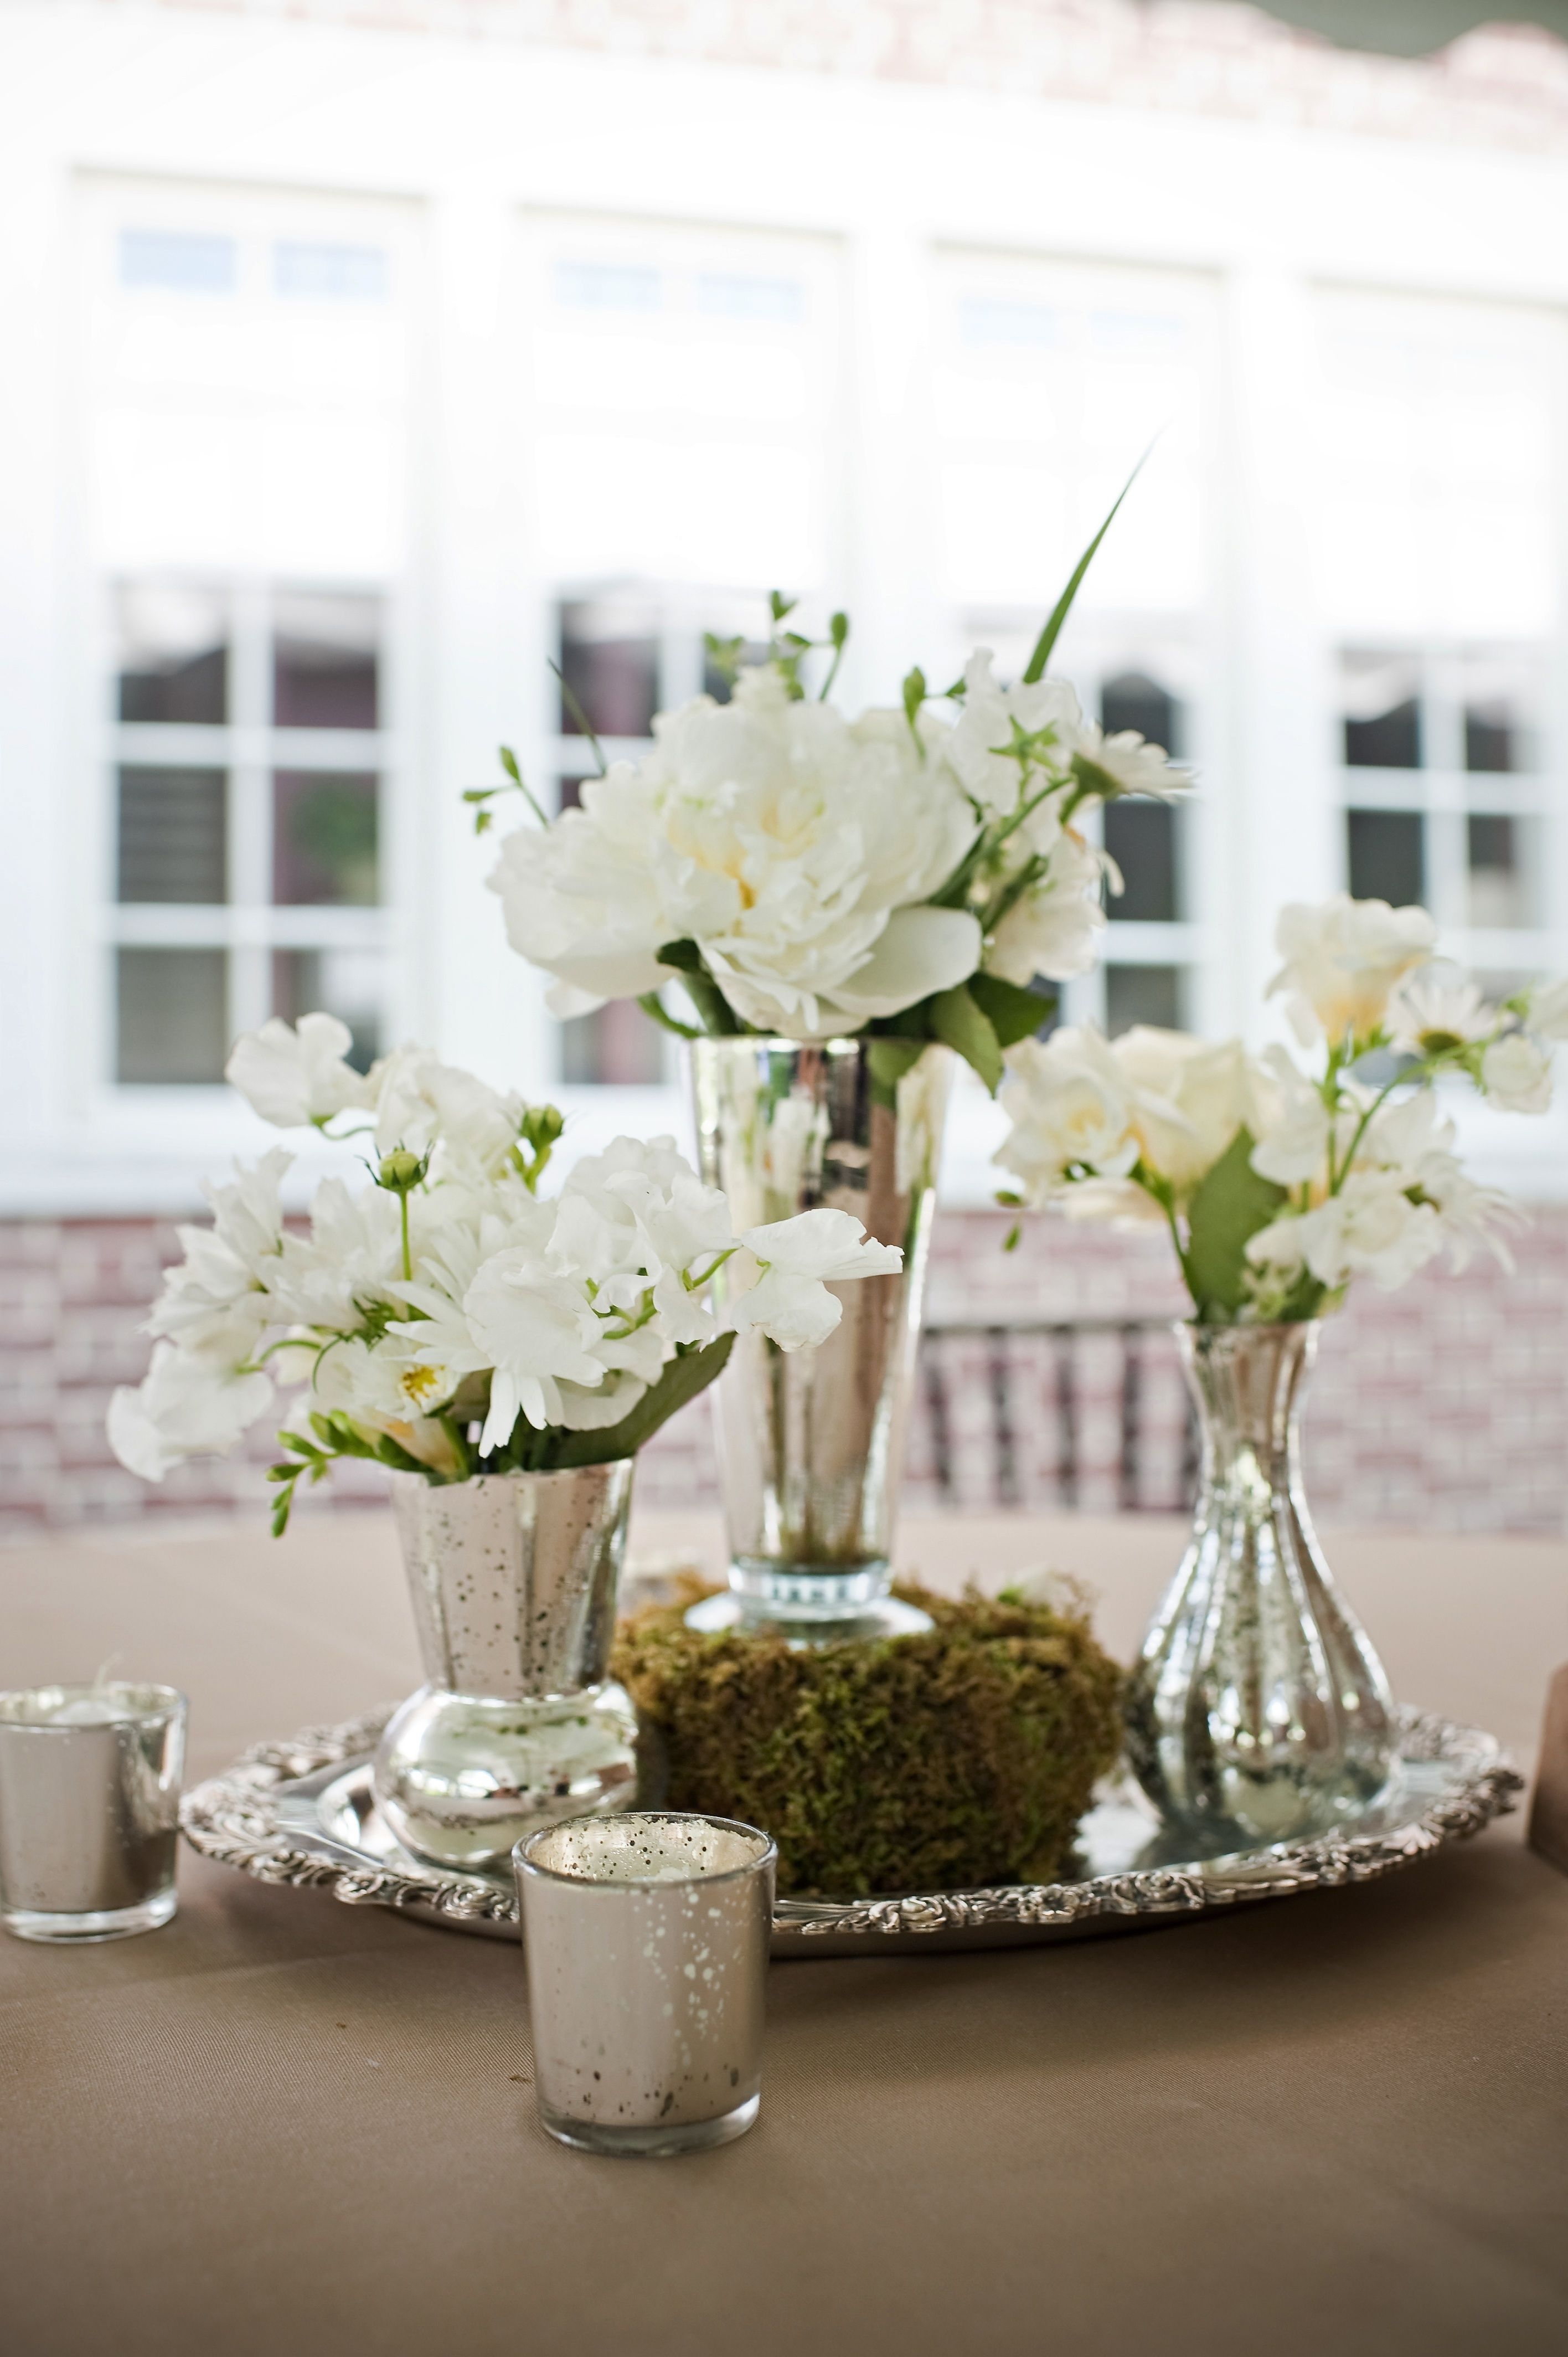 Round Dining Table Centerpieces   Lagniappe Designs (Carole Sullivan,  Birmingham, AL) Photo